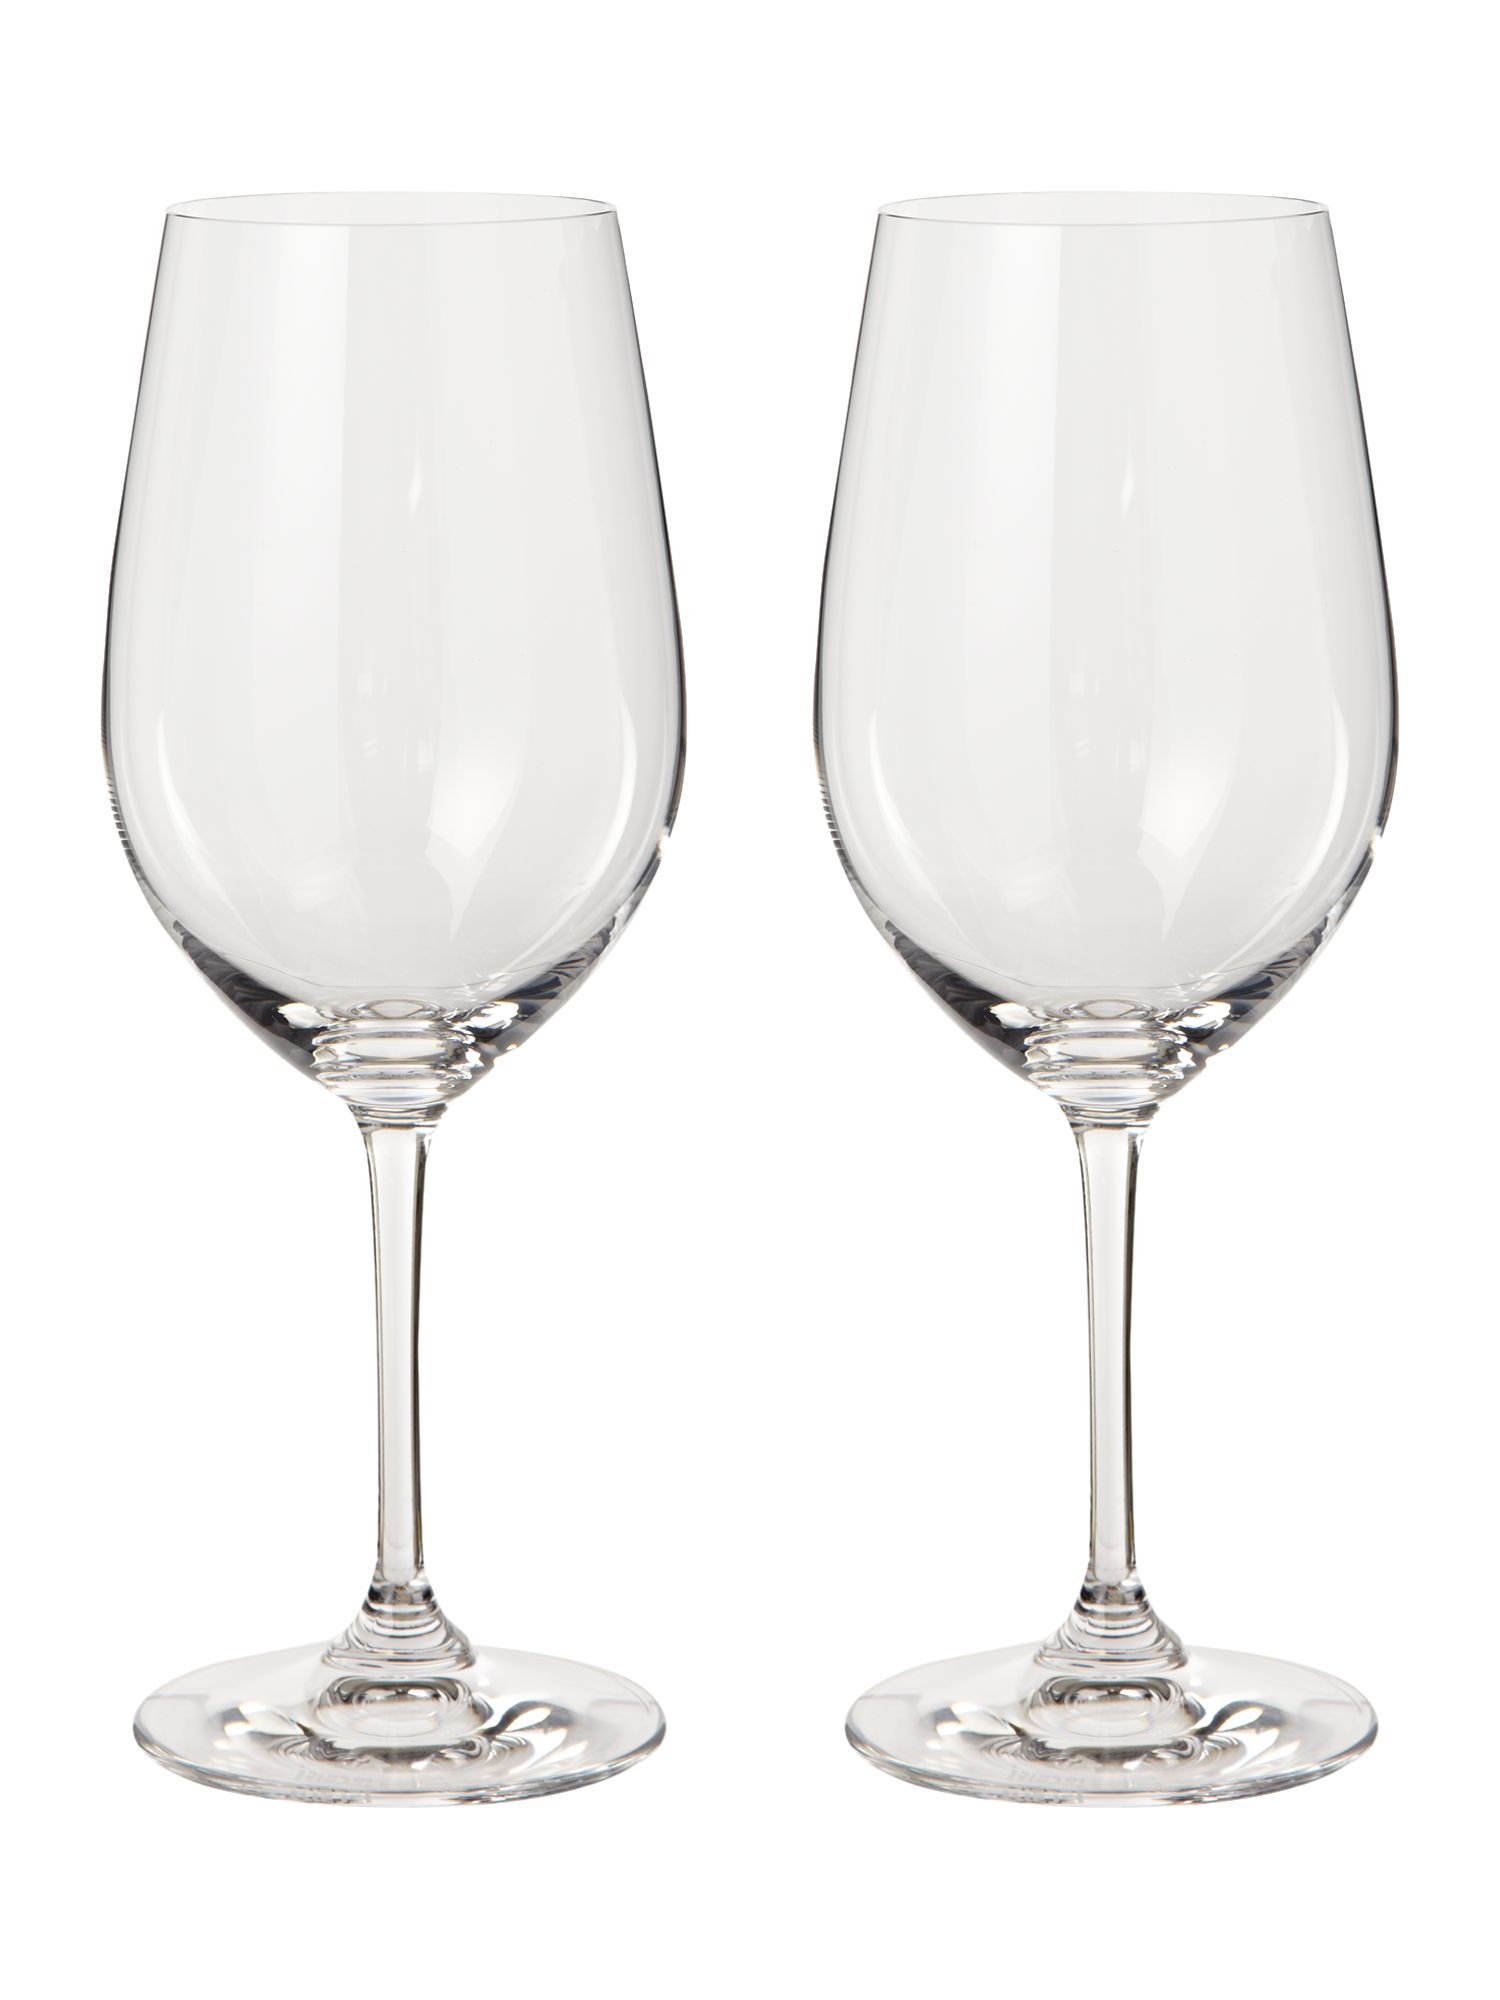 Vinum chianti glasses, box of 2